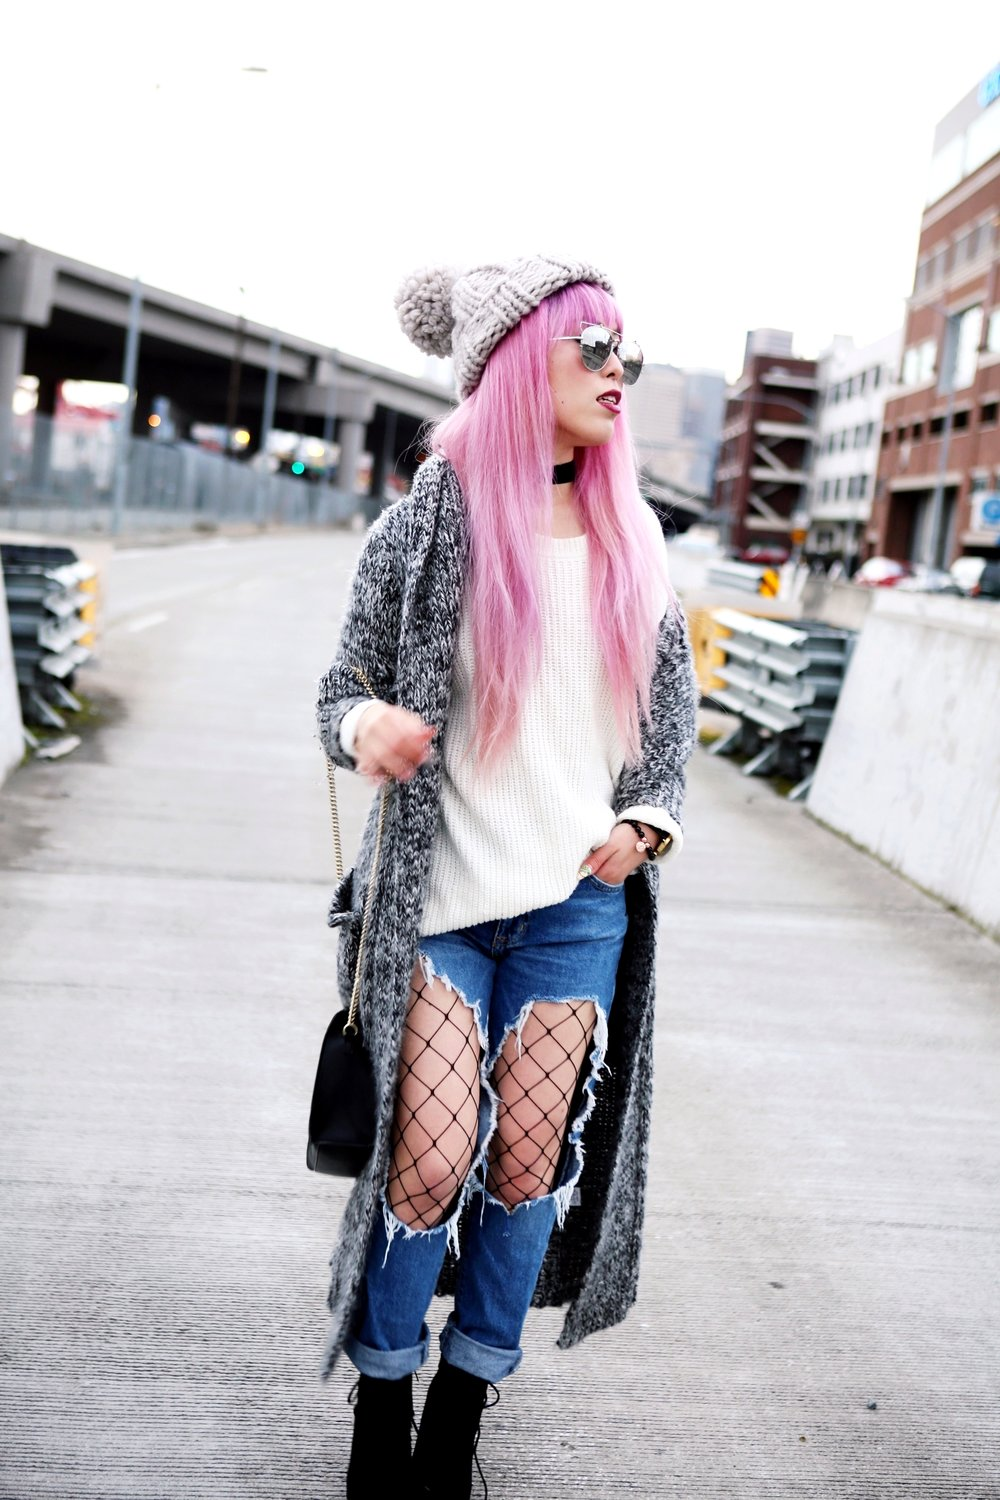 Asos Pom Pom Chunky Beanie_Forever 21 Sweater & Distressed Boyfriend Jeans_ASOS Fishnet Tights_Zara Star Velvet Chocker & Black Lace Up Boots_Gray Chunky Long Cardigan_Free People Mirrored Sunglasses_Pink Hair_Seattle Fashion Style Blogger_Japanese 3